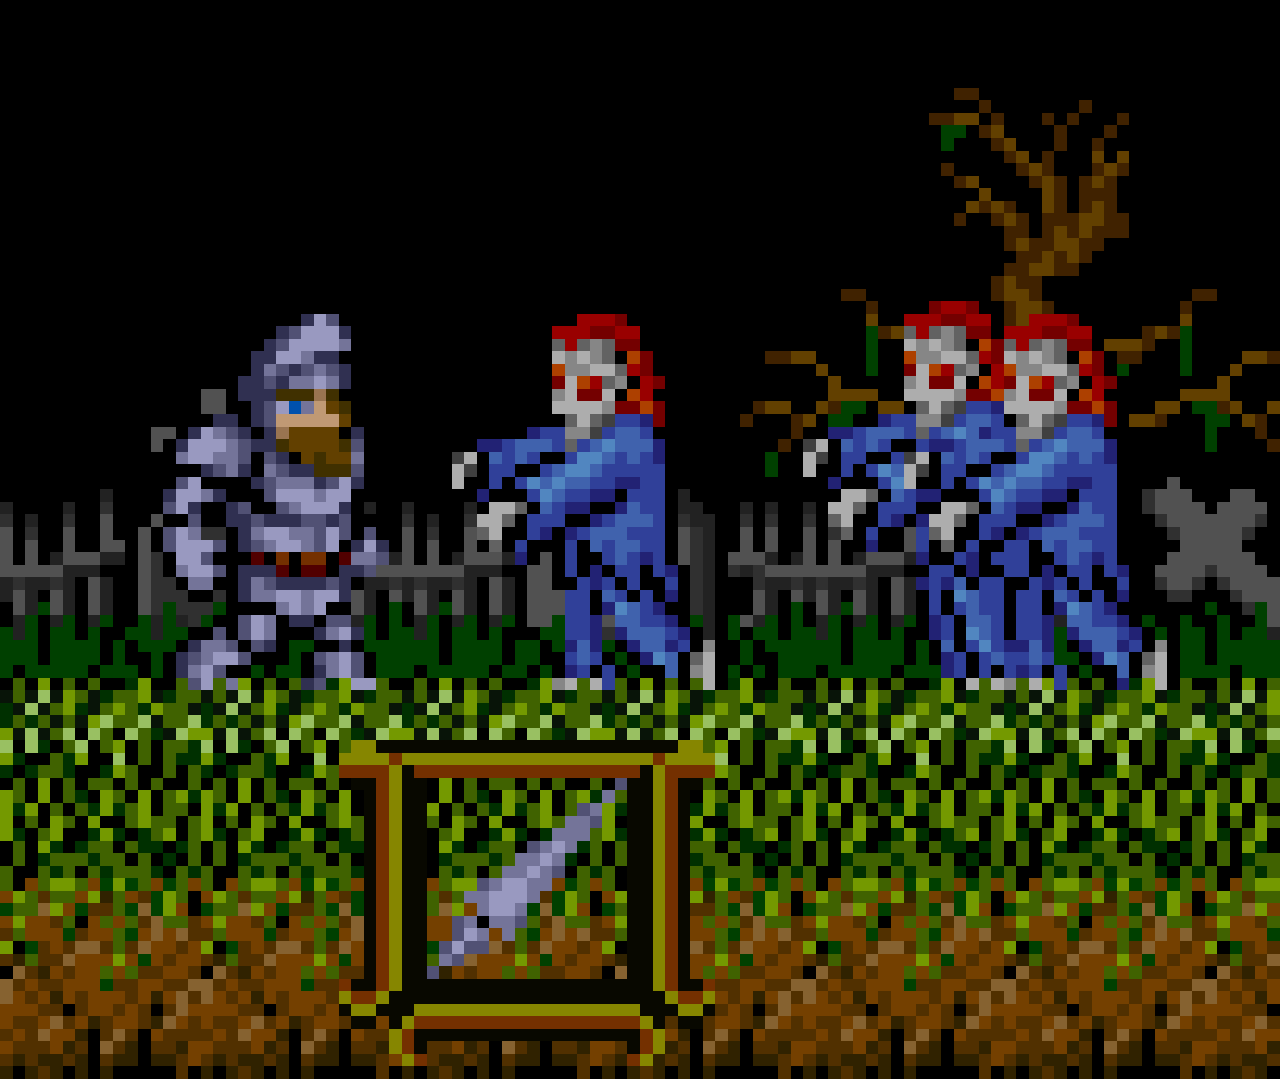 Ghosts 'n Goblins LCD close up